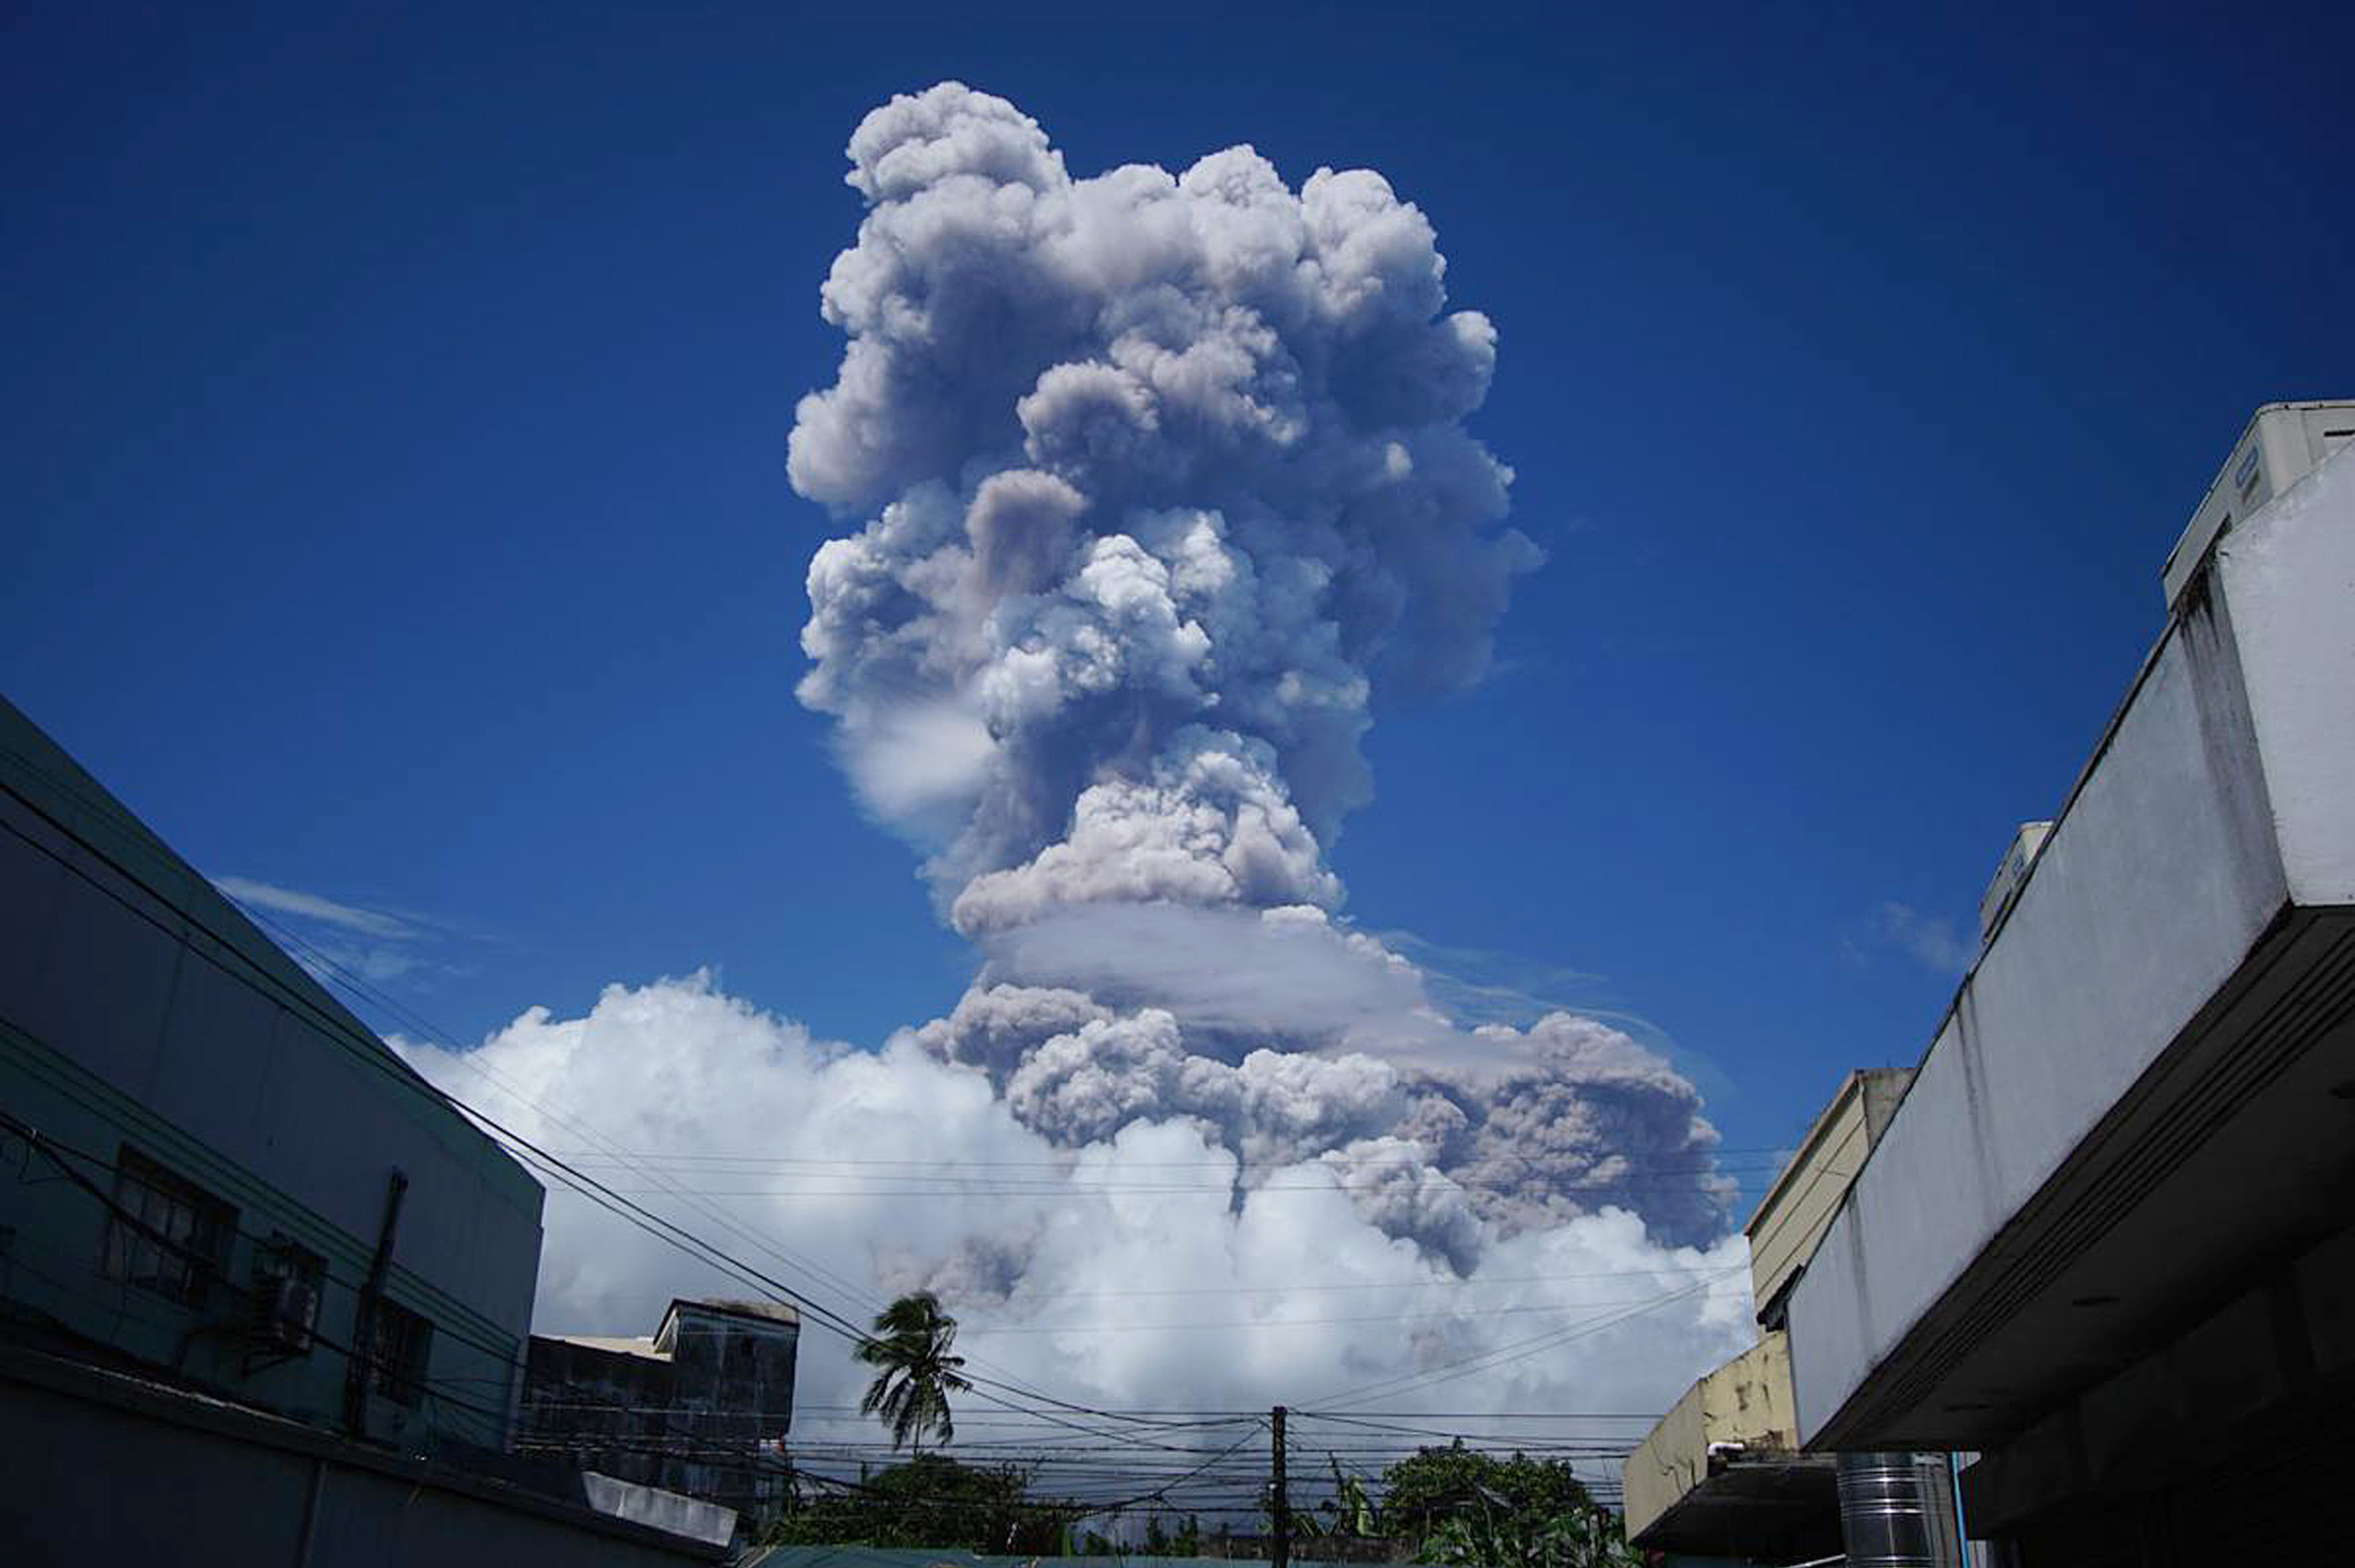 A huge column of ash shoots up to the sky during the eruption of Mayon volcano Monday, Jan. 22, 2018 as seen from Daraga township, Legazpi city, Albay province, around 340 kilometers (200 miles) southeast of Manila, Philippines